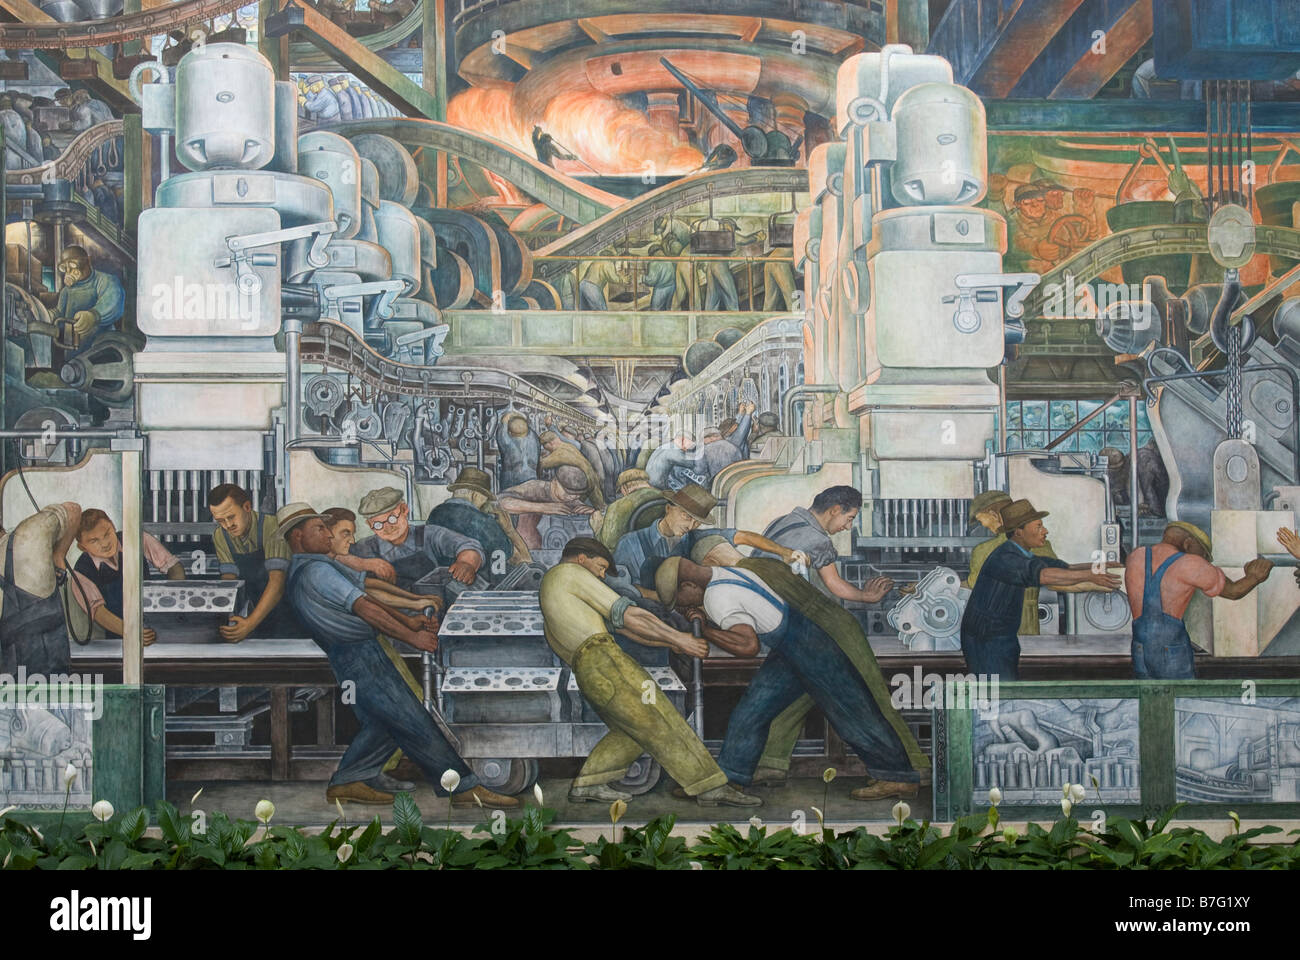 Diego Rivera Mural At The Detroit Institute Of Arts In Detroit Stock Photo Alamy